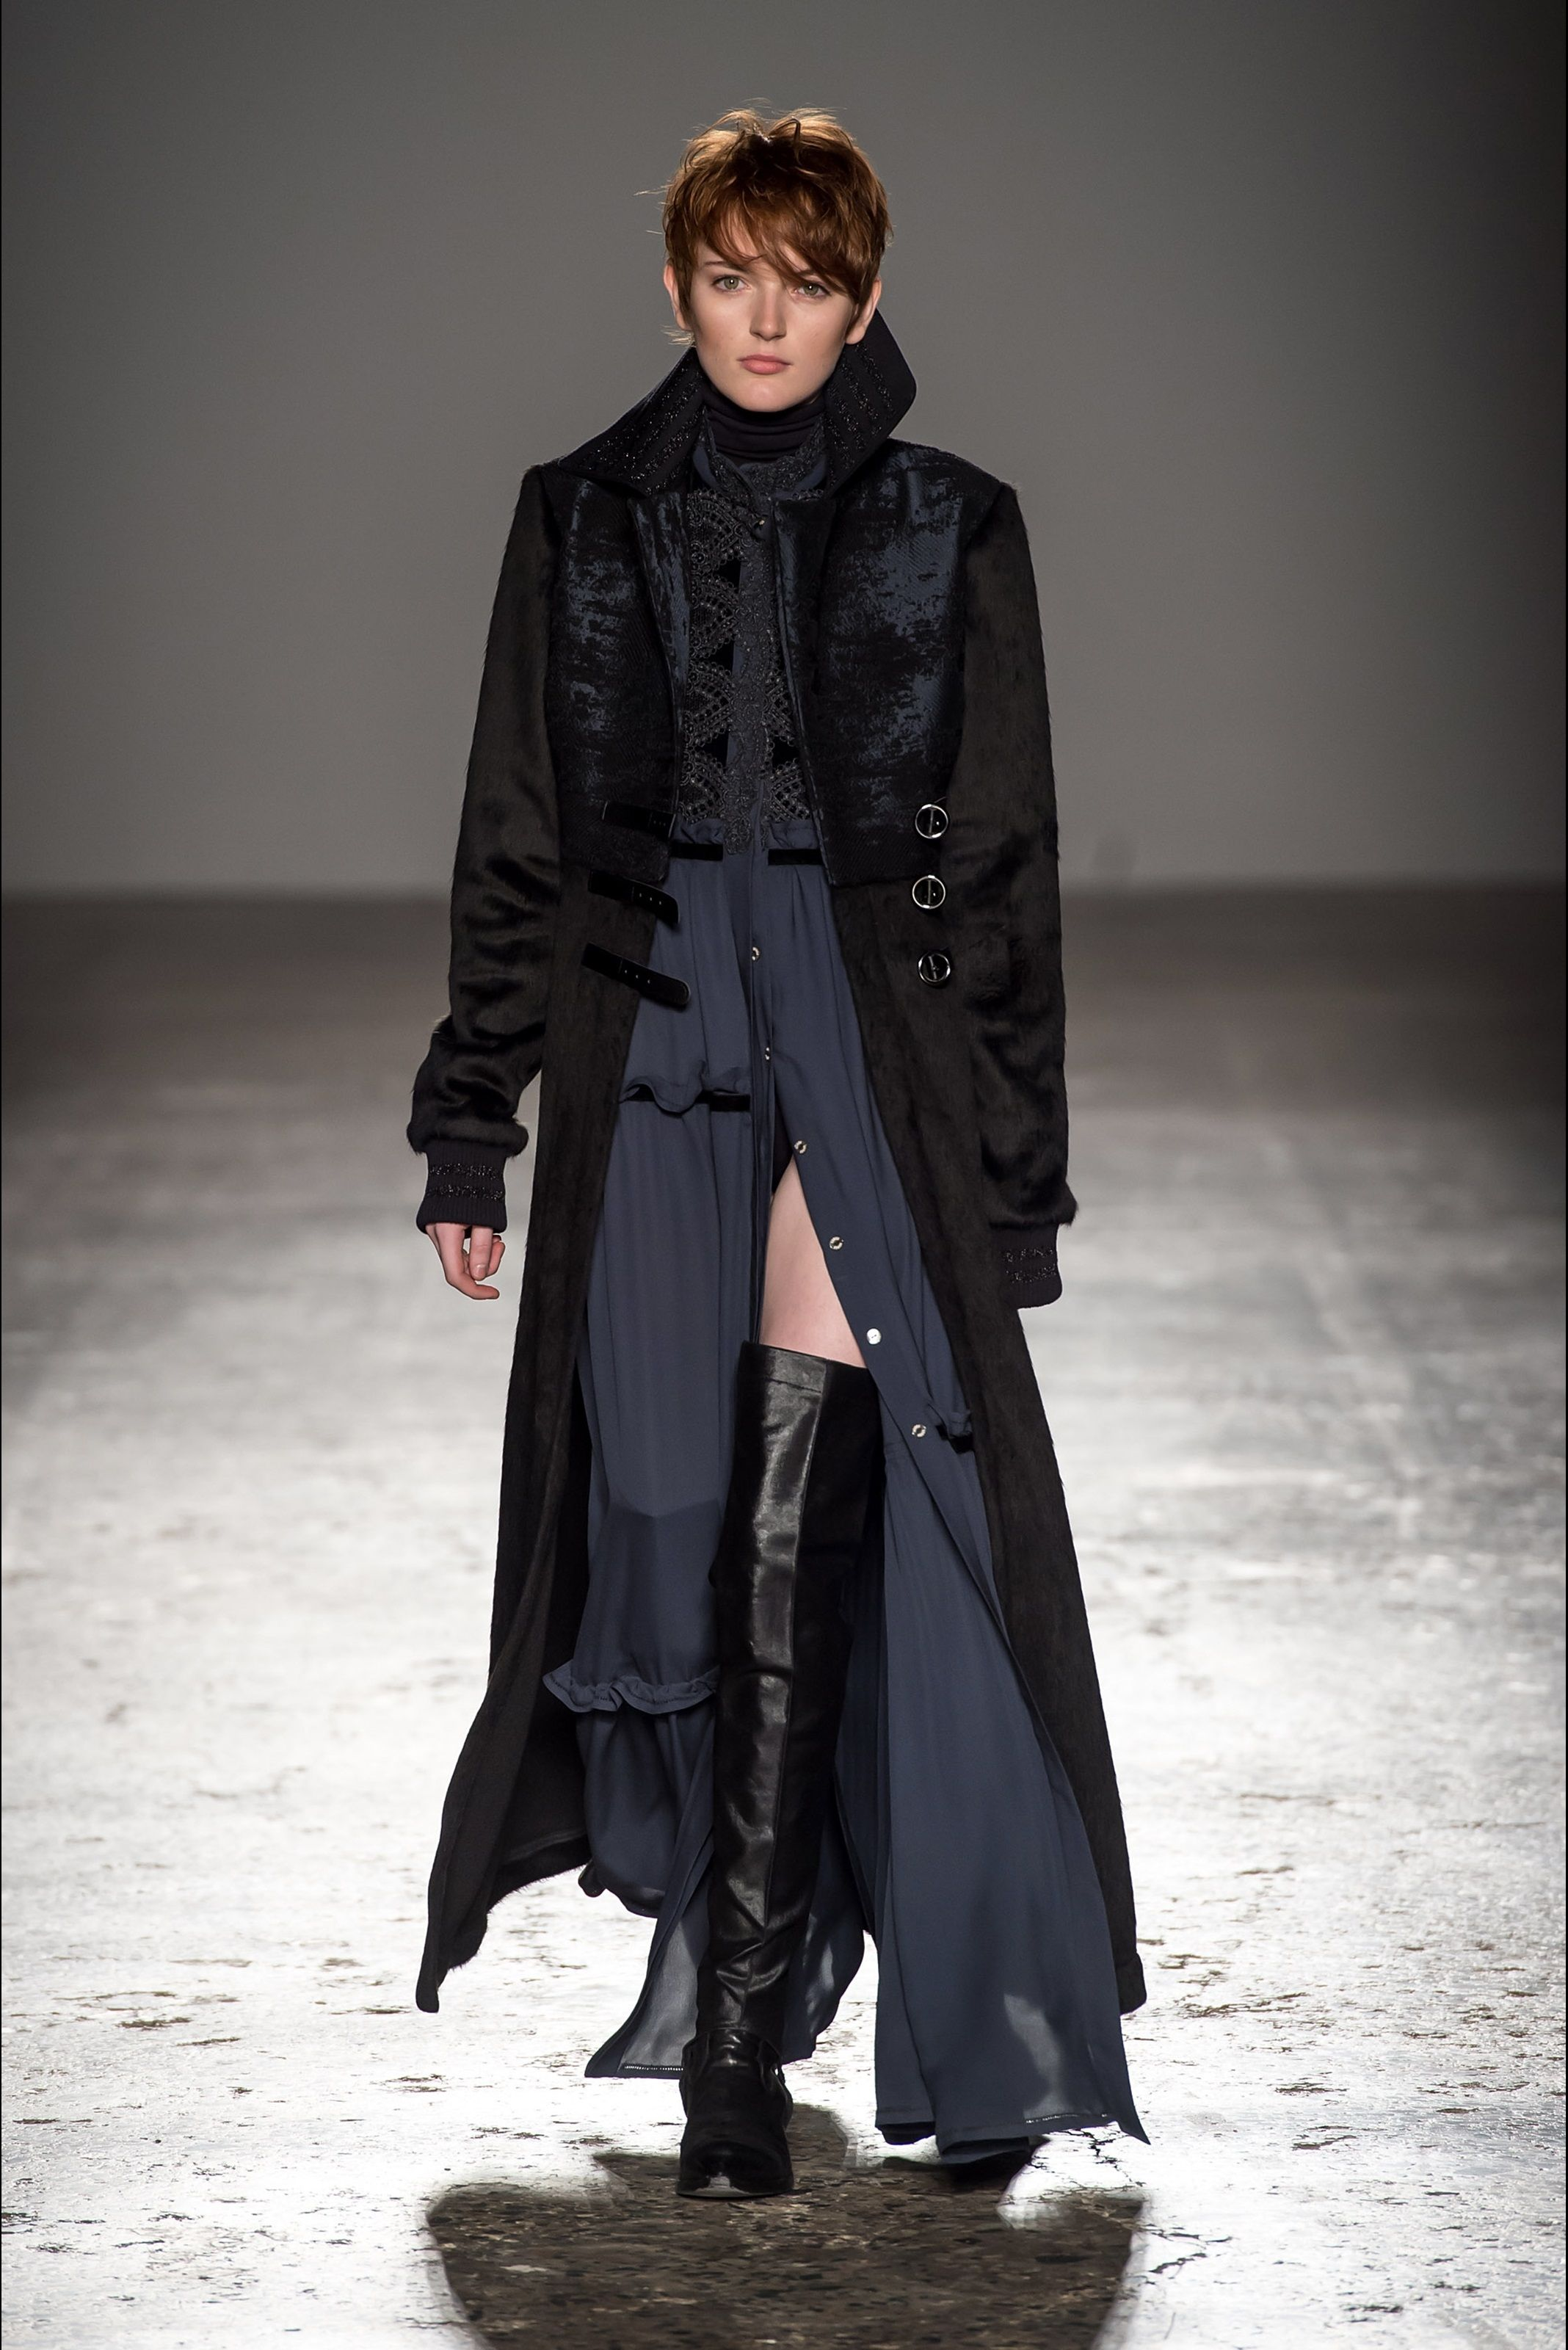 ef00a6949f Grinko Milano - Collections Fall Winter 2017-18 - Shows - Vogue.it ...